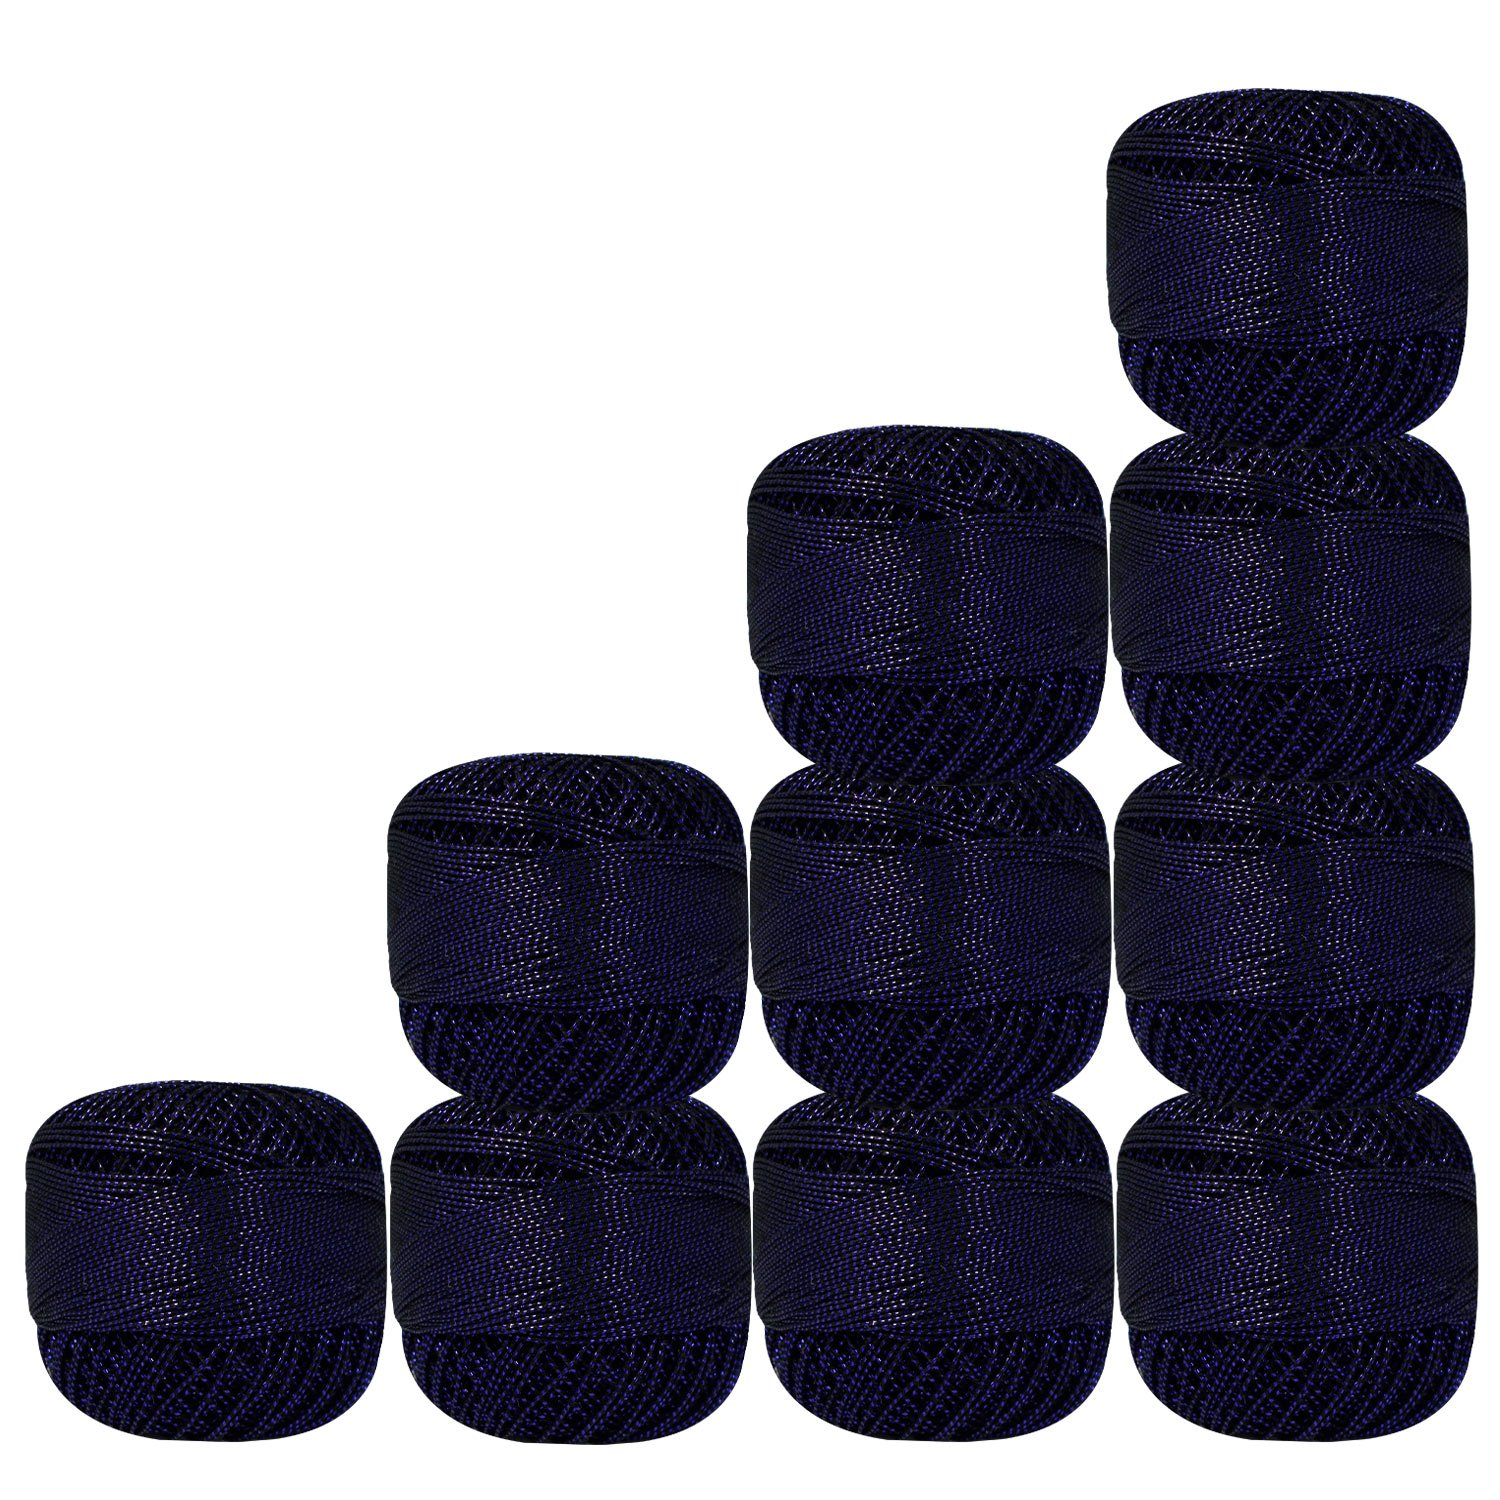 Bunch of 10 Pcs Black with Metallic Blue Cotton Crochet Thread for Cross Stitch Knitting Tatting Doilies Skeins Lacey Craft Yarn